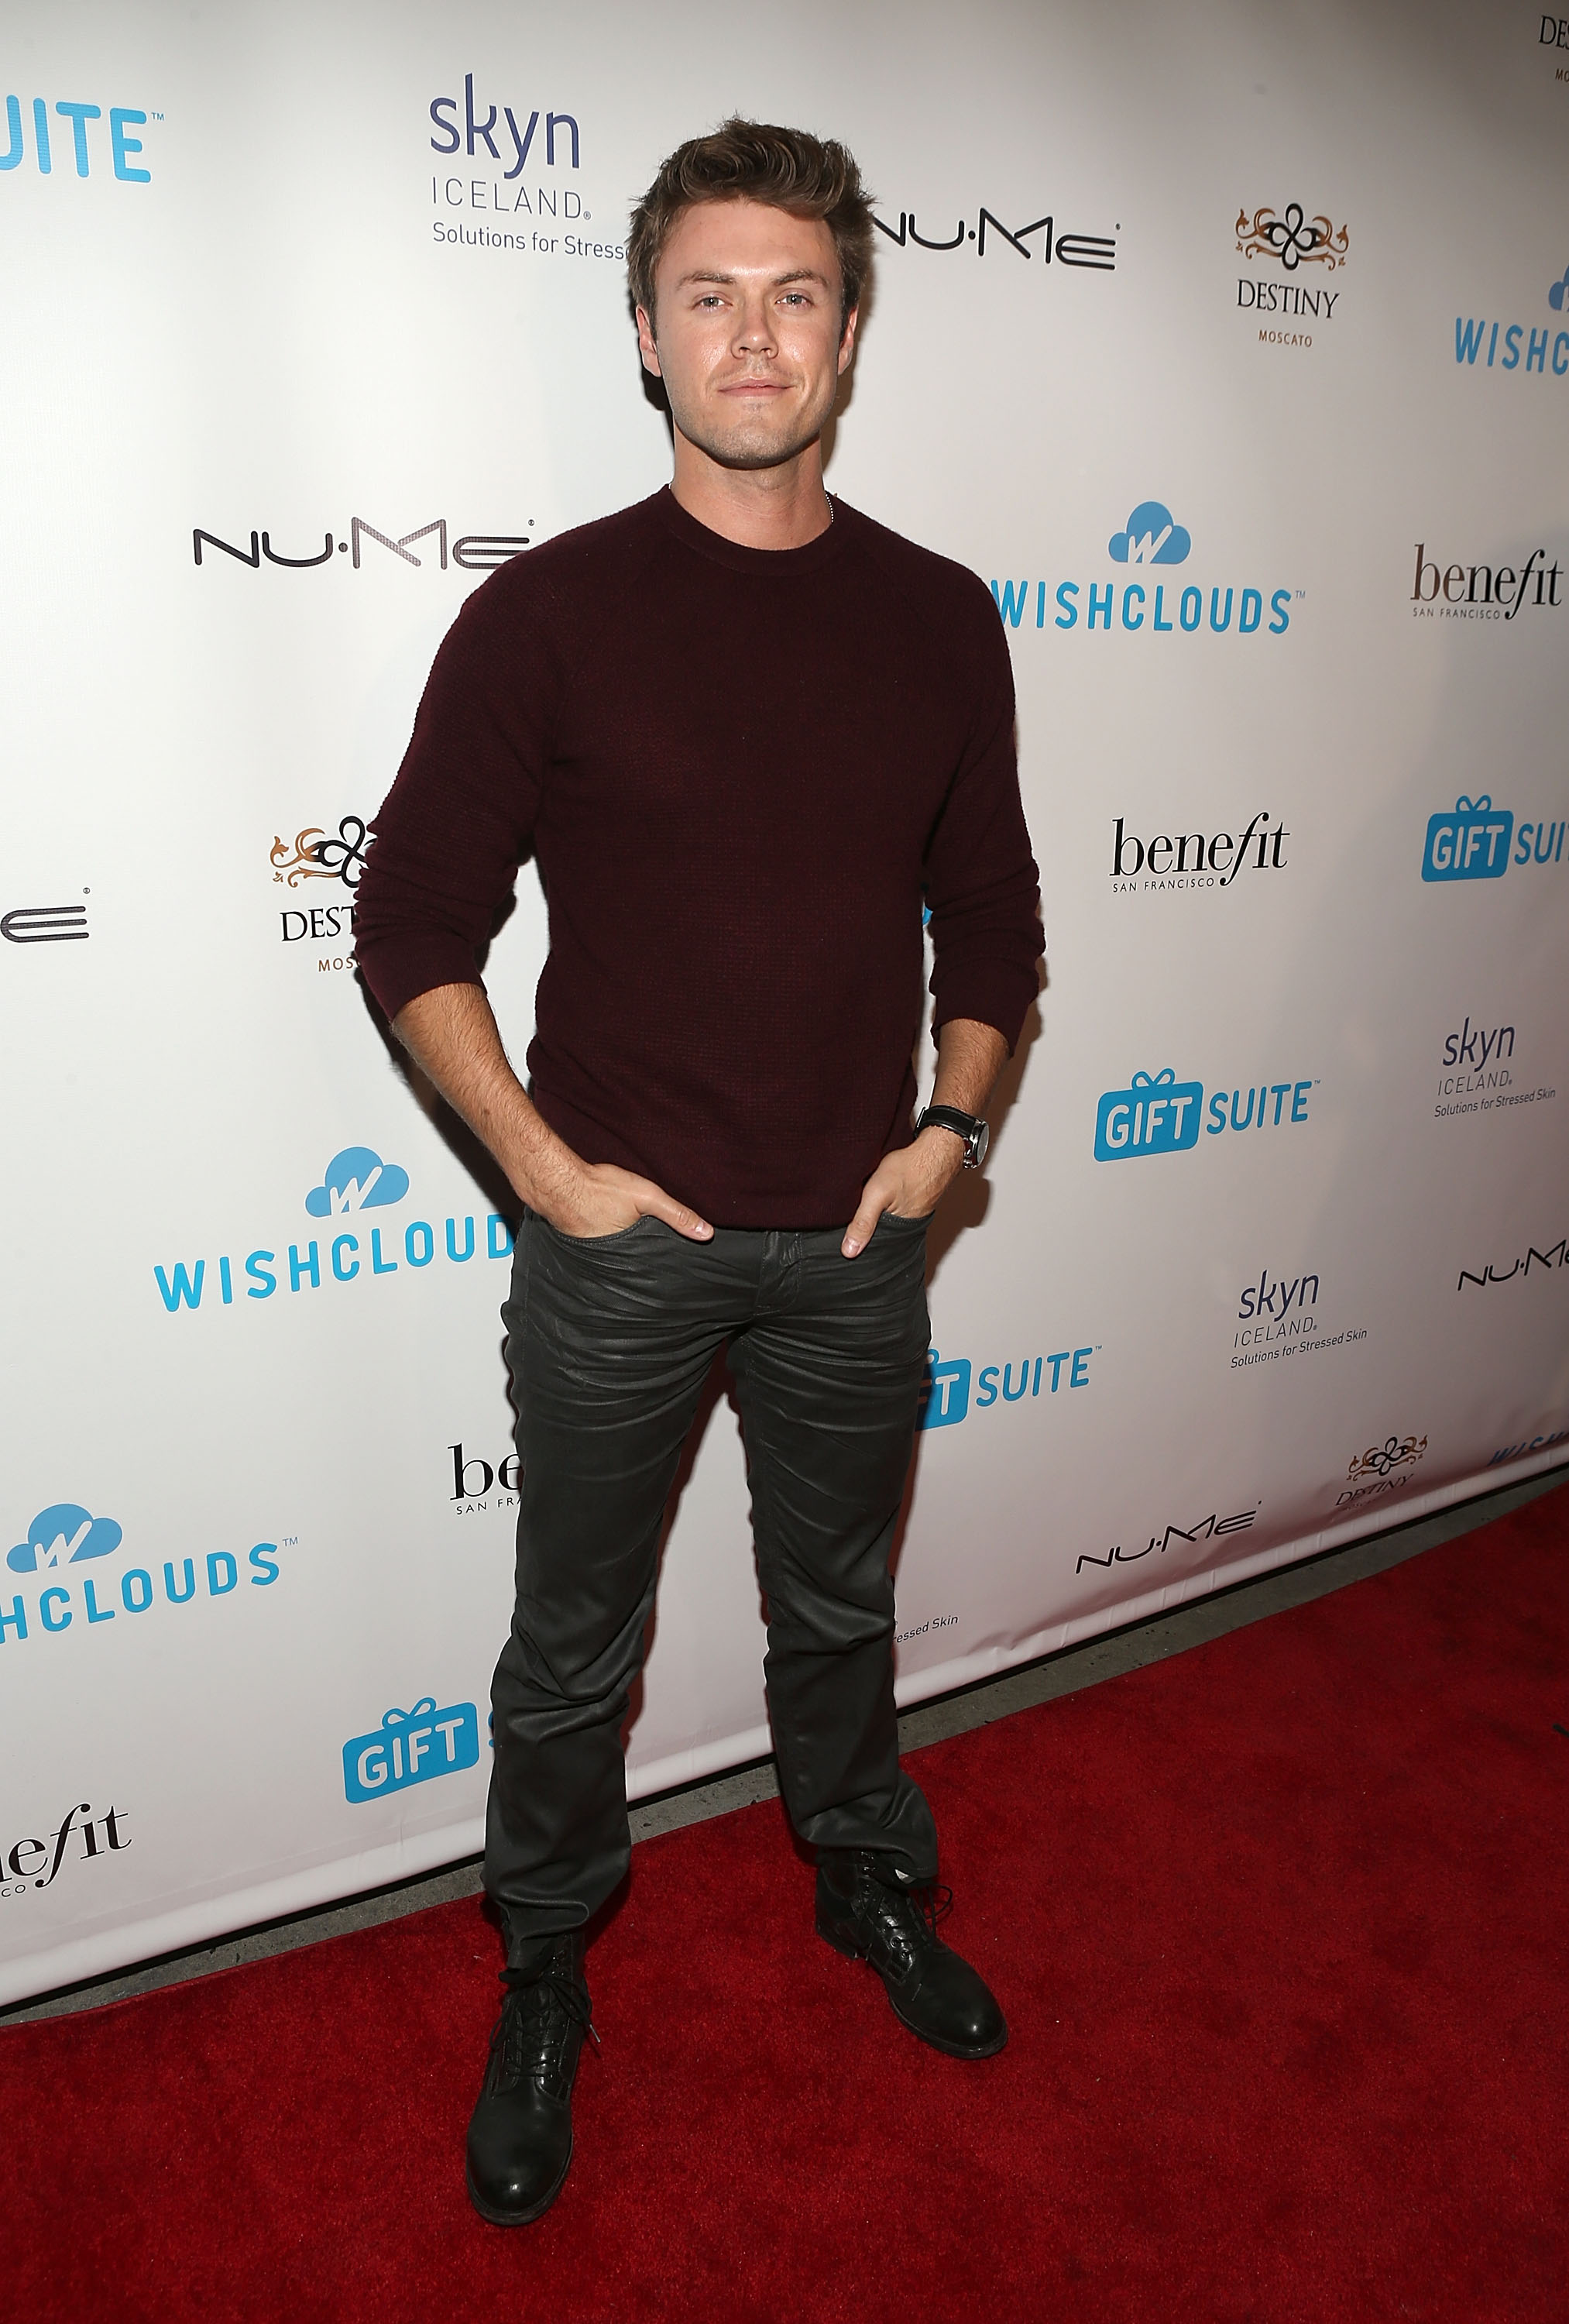 Actor Blake Cooper Griffin attends the WishClouds Launch Party at Bootsy Bellows on November 20, 2014 in West Hollywood, California.